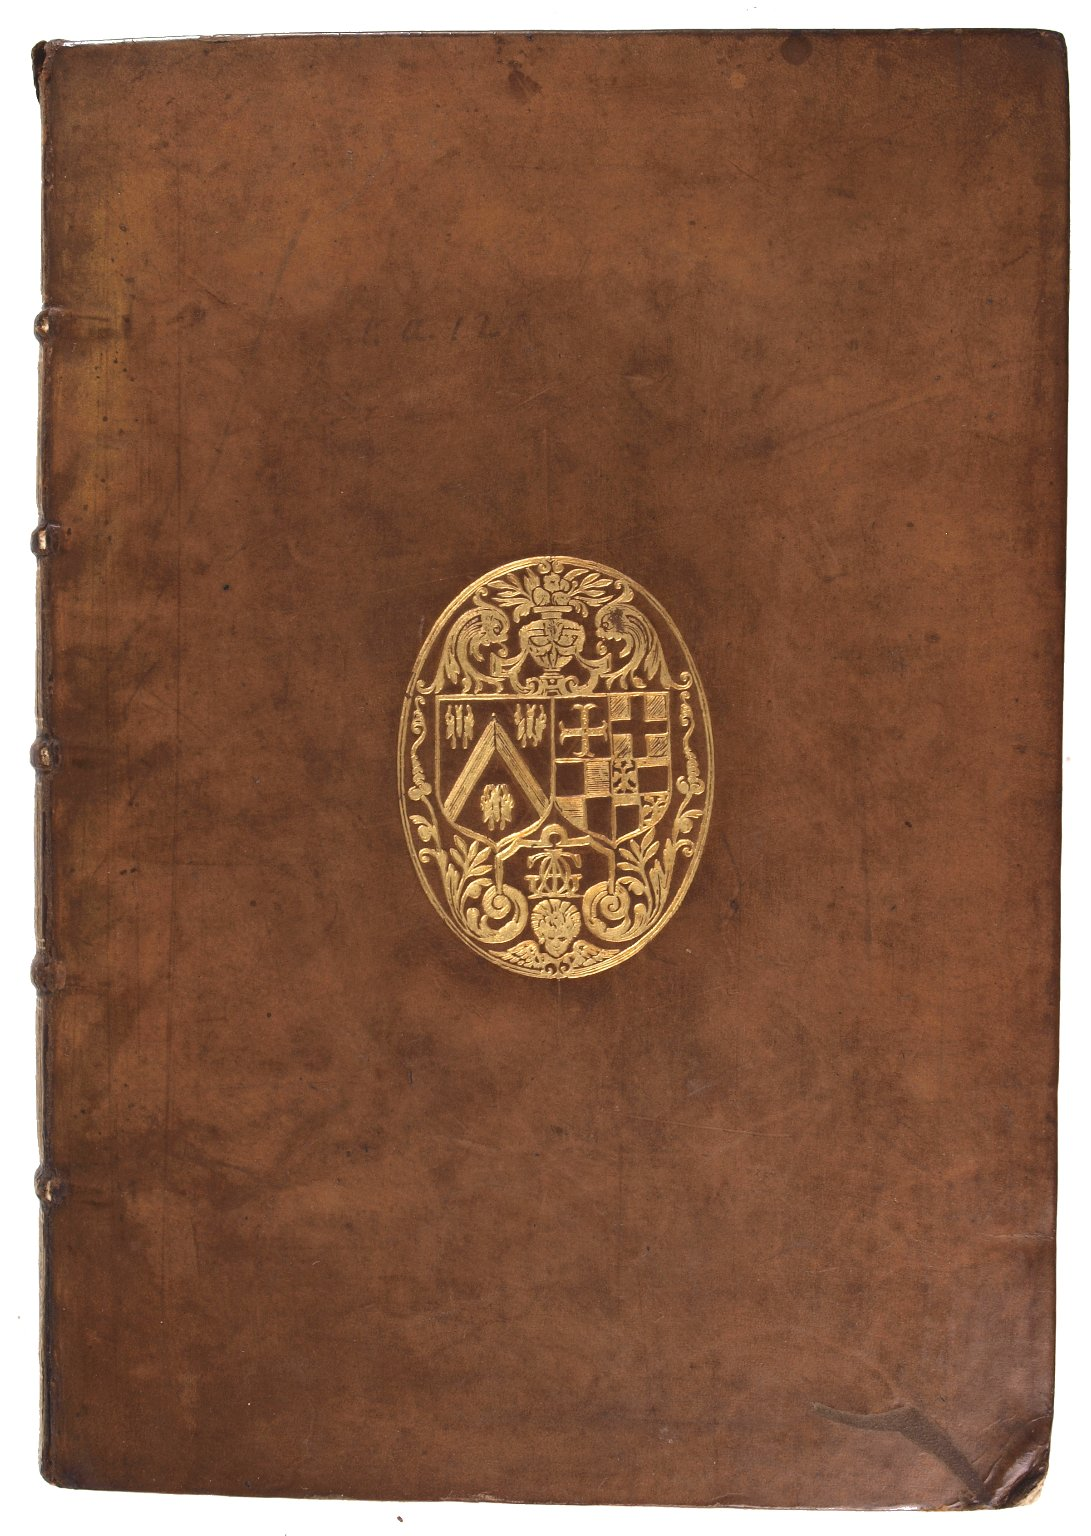 Front cover, STC 2369.